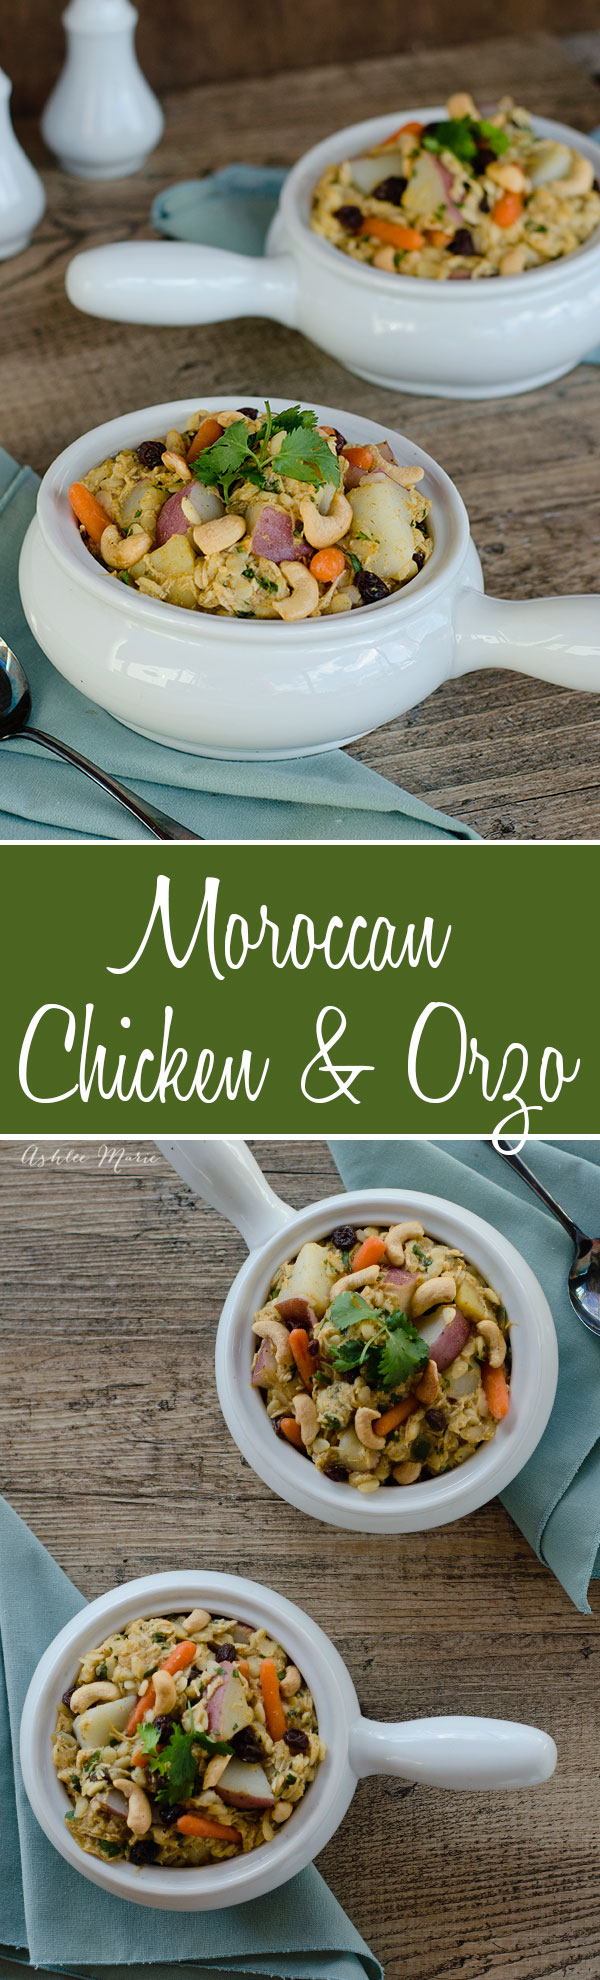 This Moroccan chicken and Orzo dish is based on a slowcooker packet that I have amped up